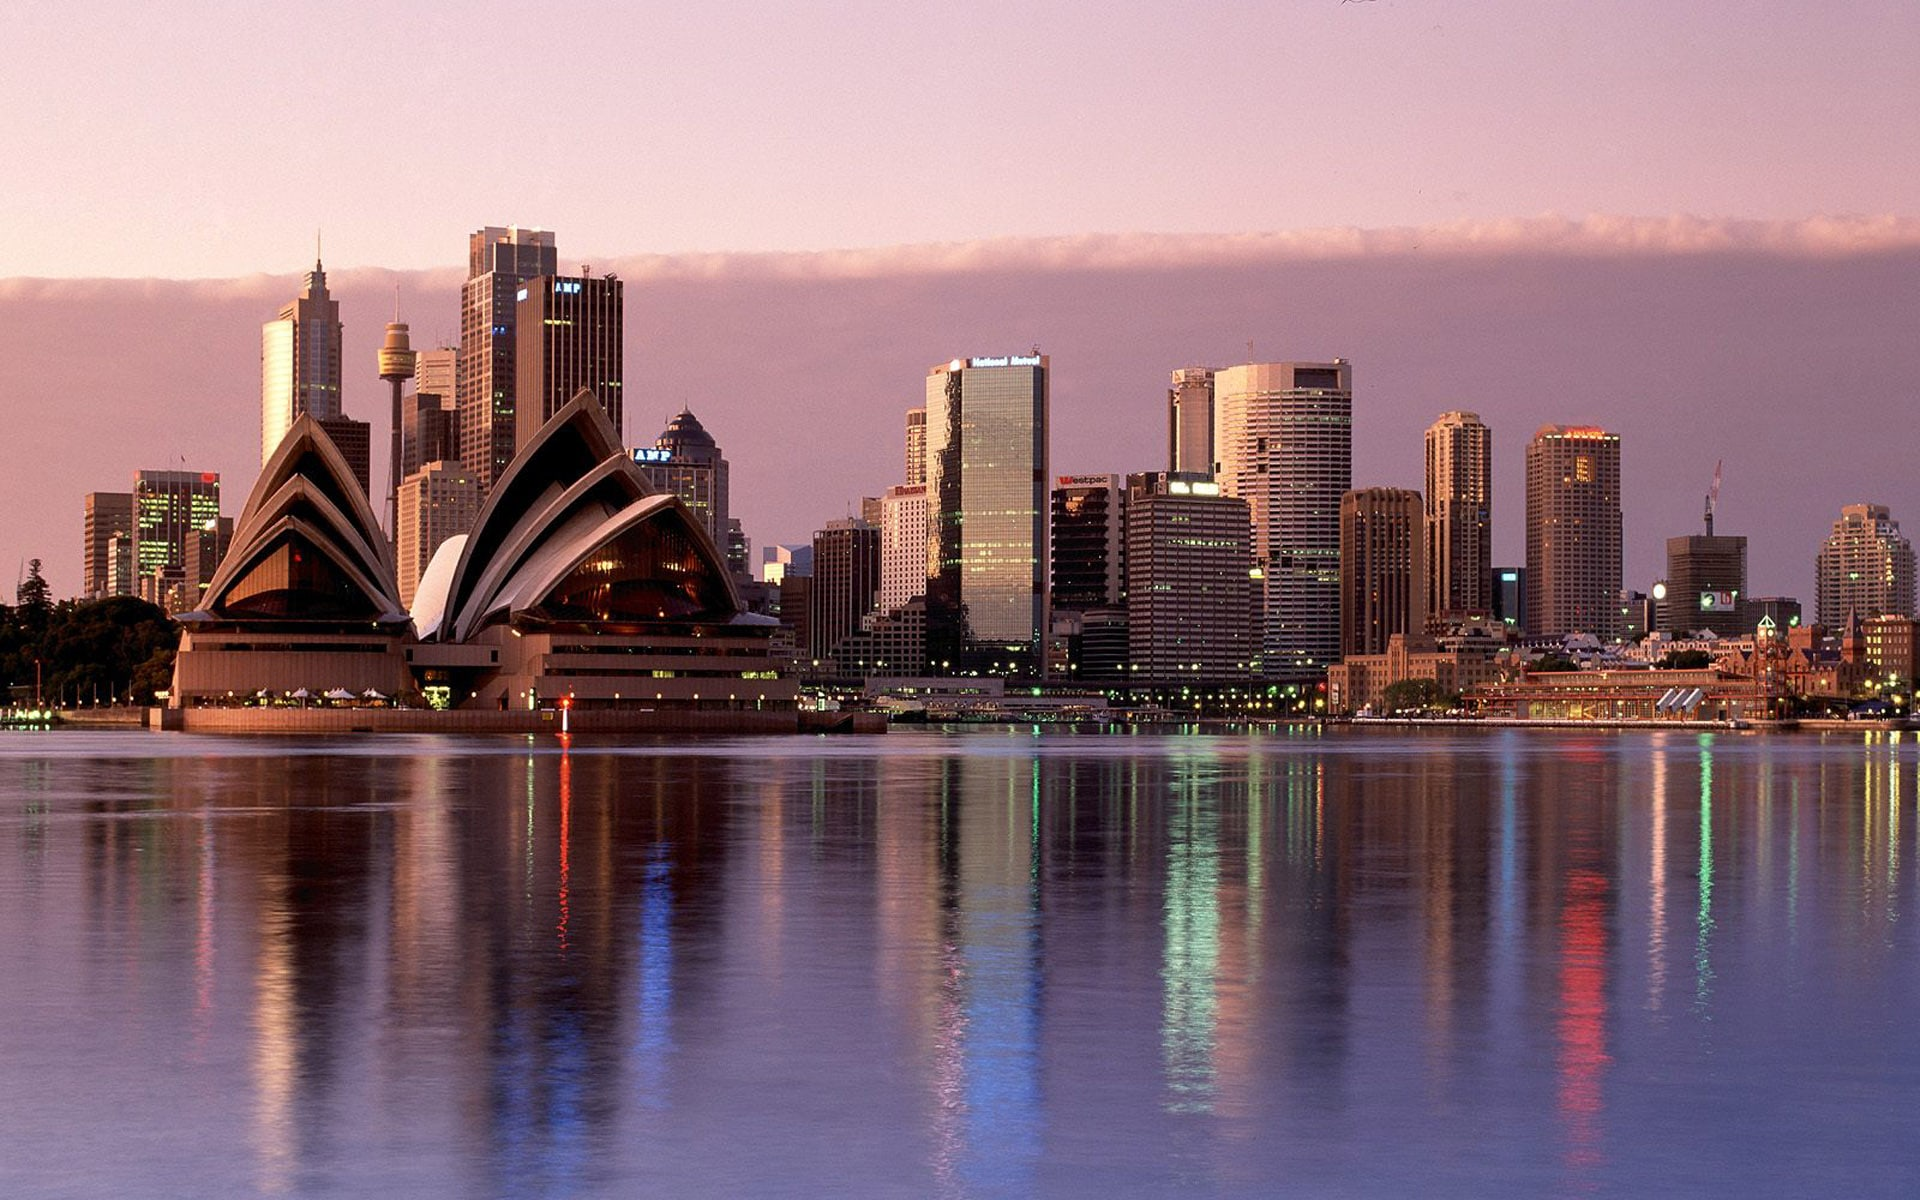 Sydney Wallpapers hd